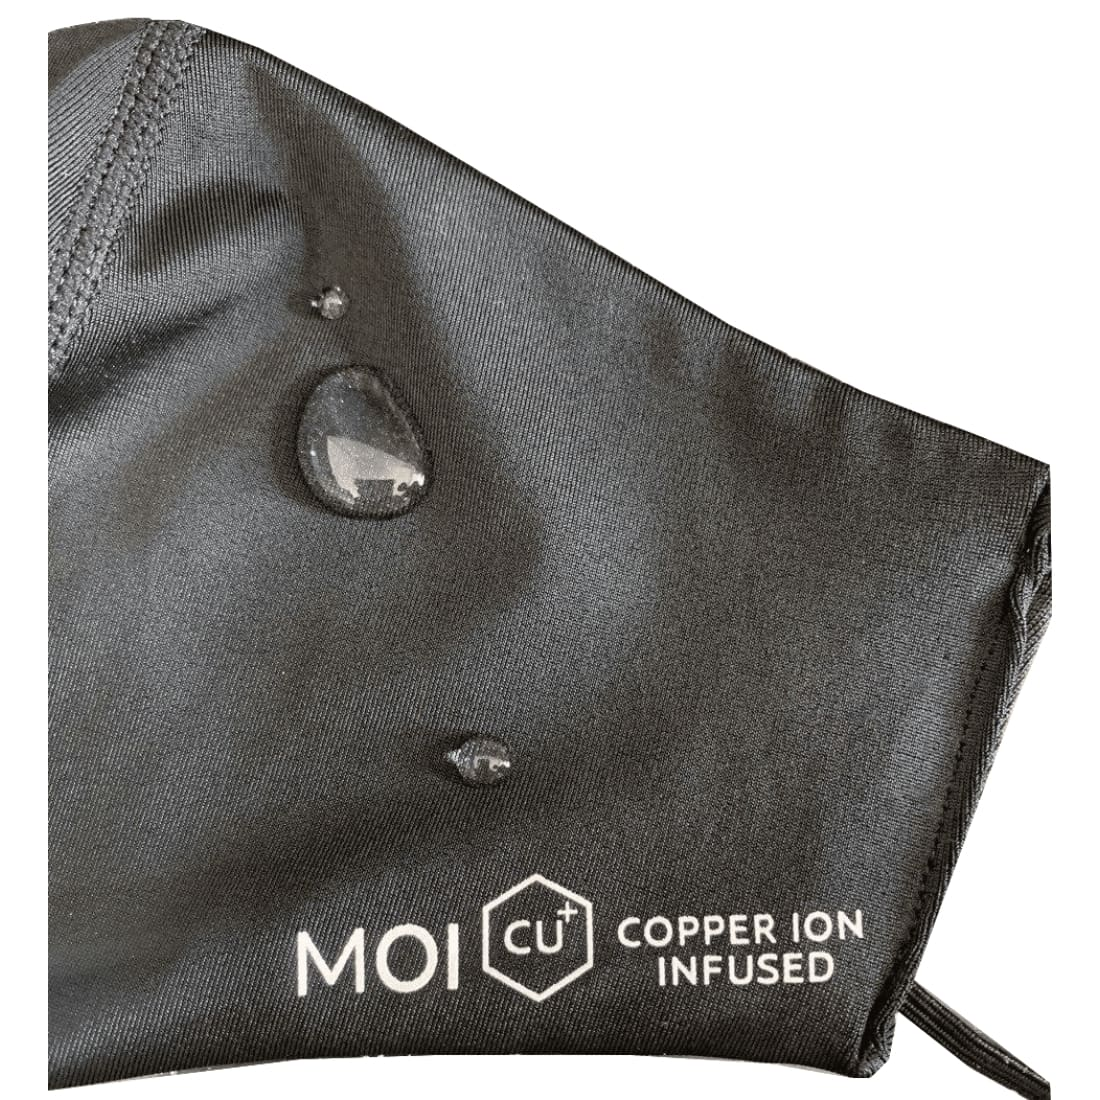 Copper ion infused mask - Mask for virus and bacteria